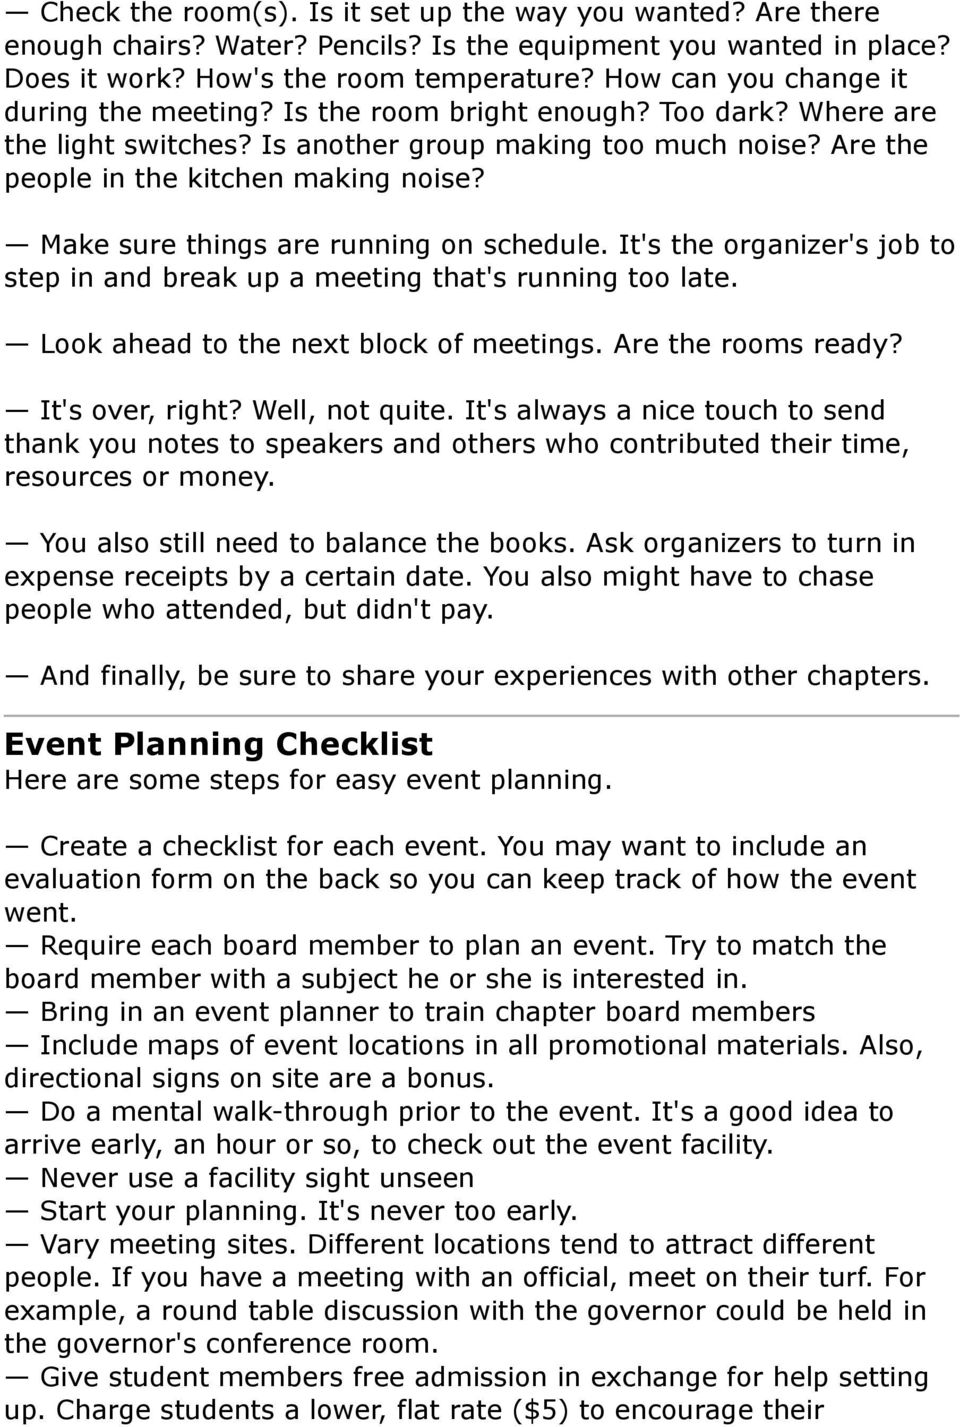 Make sure things are running on schedule. It's the organizer's job to step in and break up a meeting that's running too late. Look ahead to the next block of meetings. Are the rooms ready?